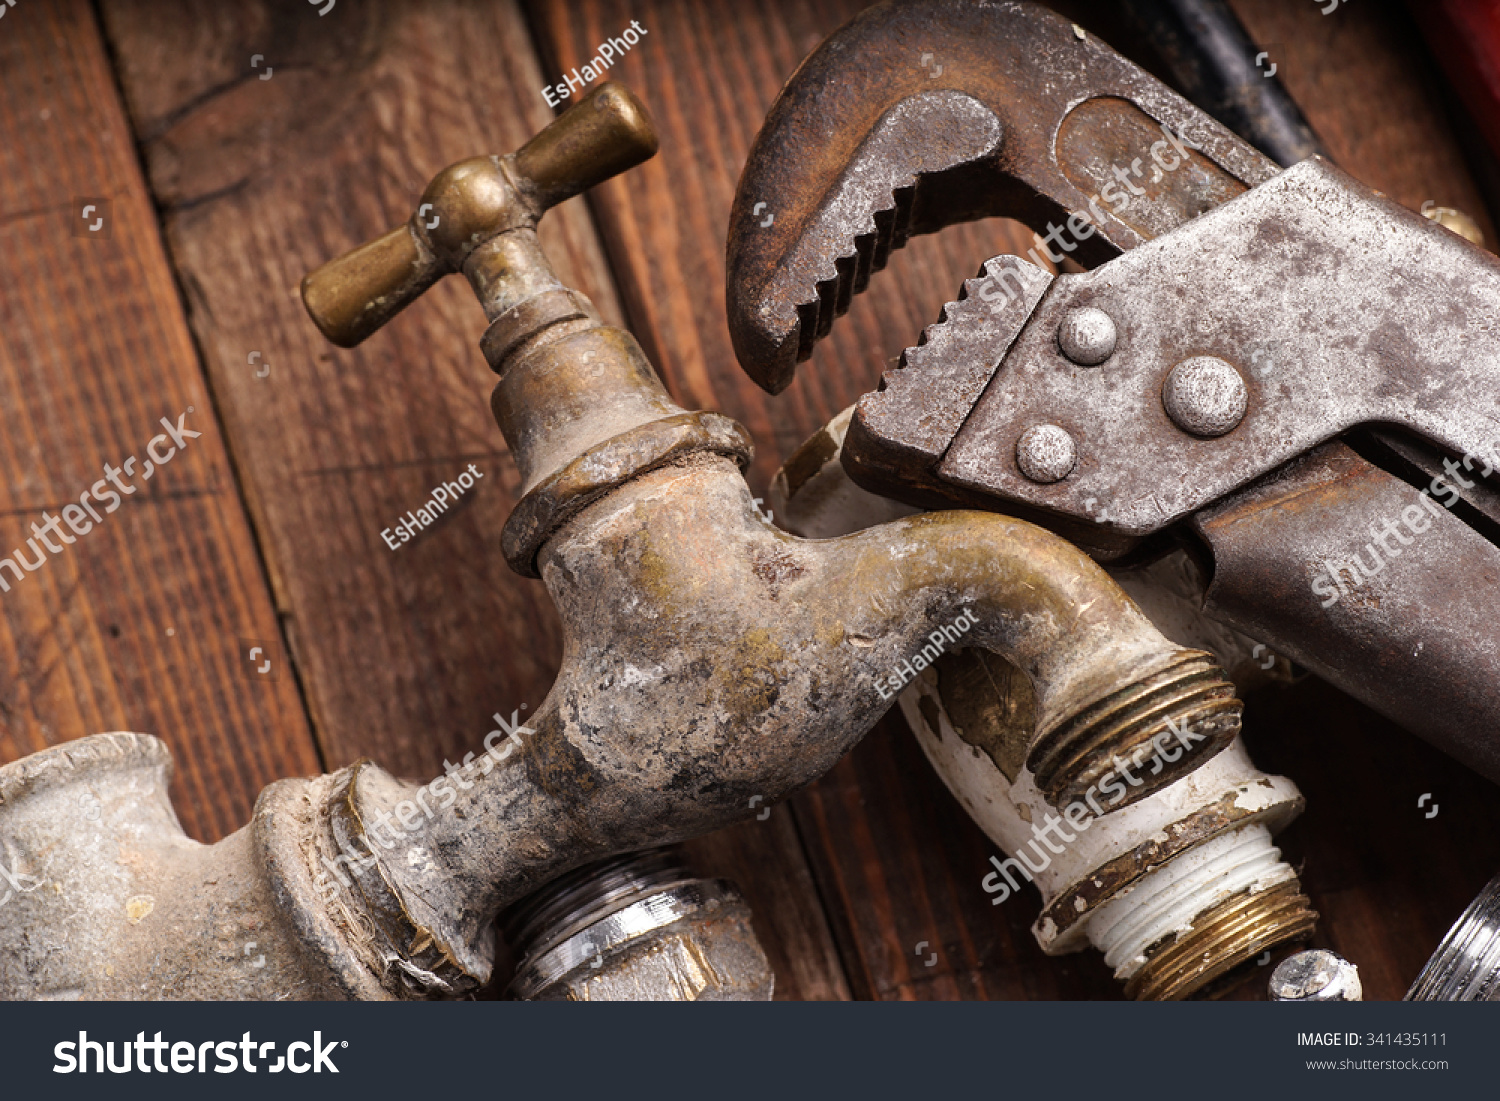 Plumbing tools lying old pipes faucets stock photo for What are old plumbing pipes made of